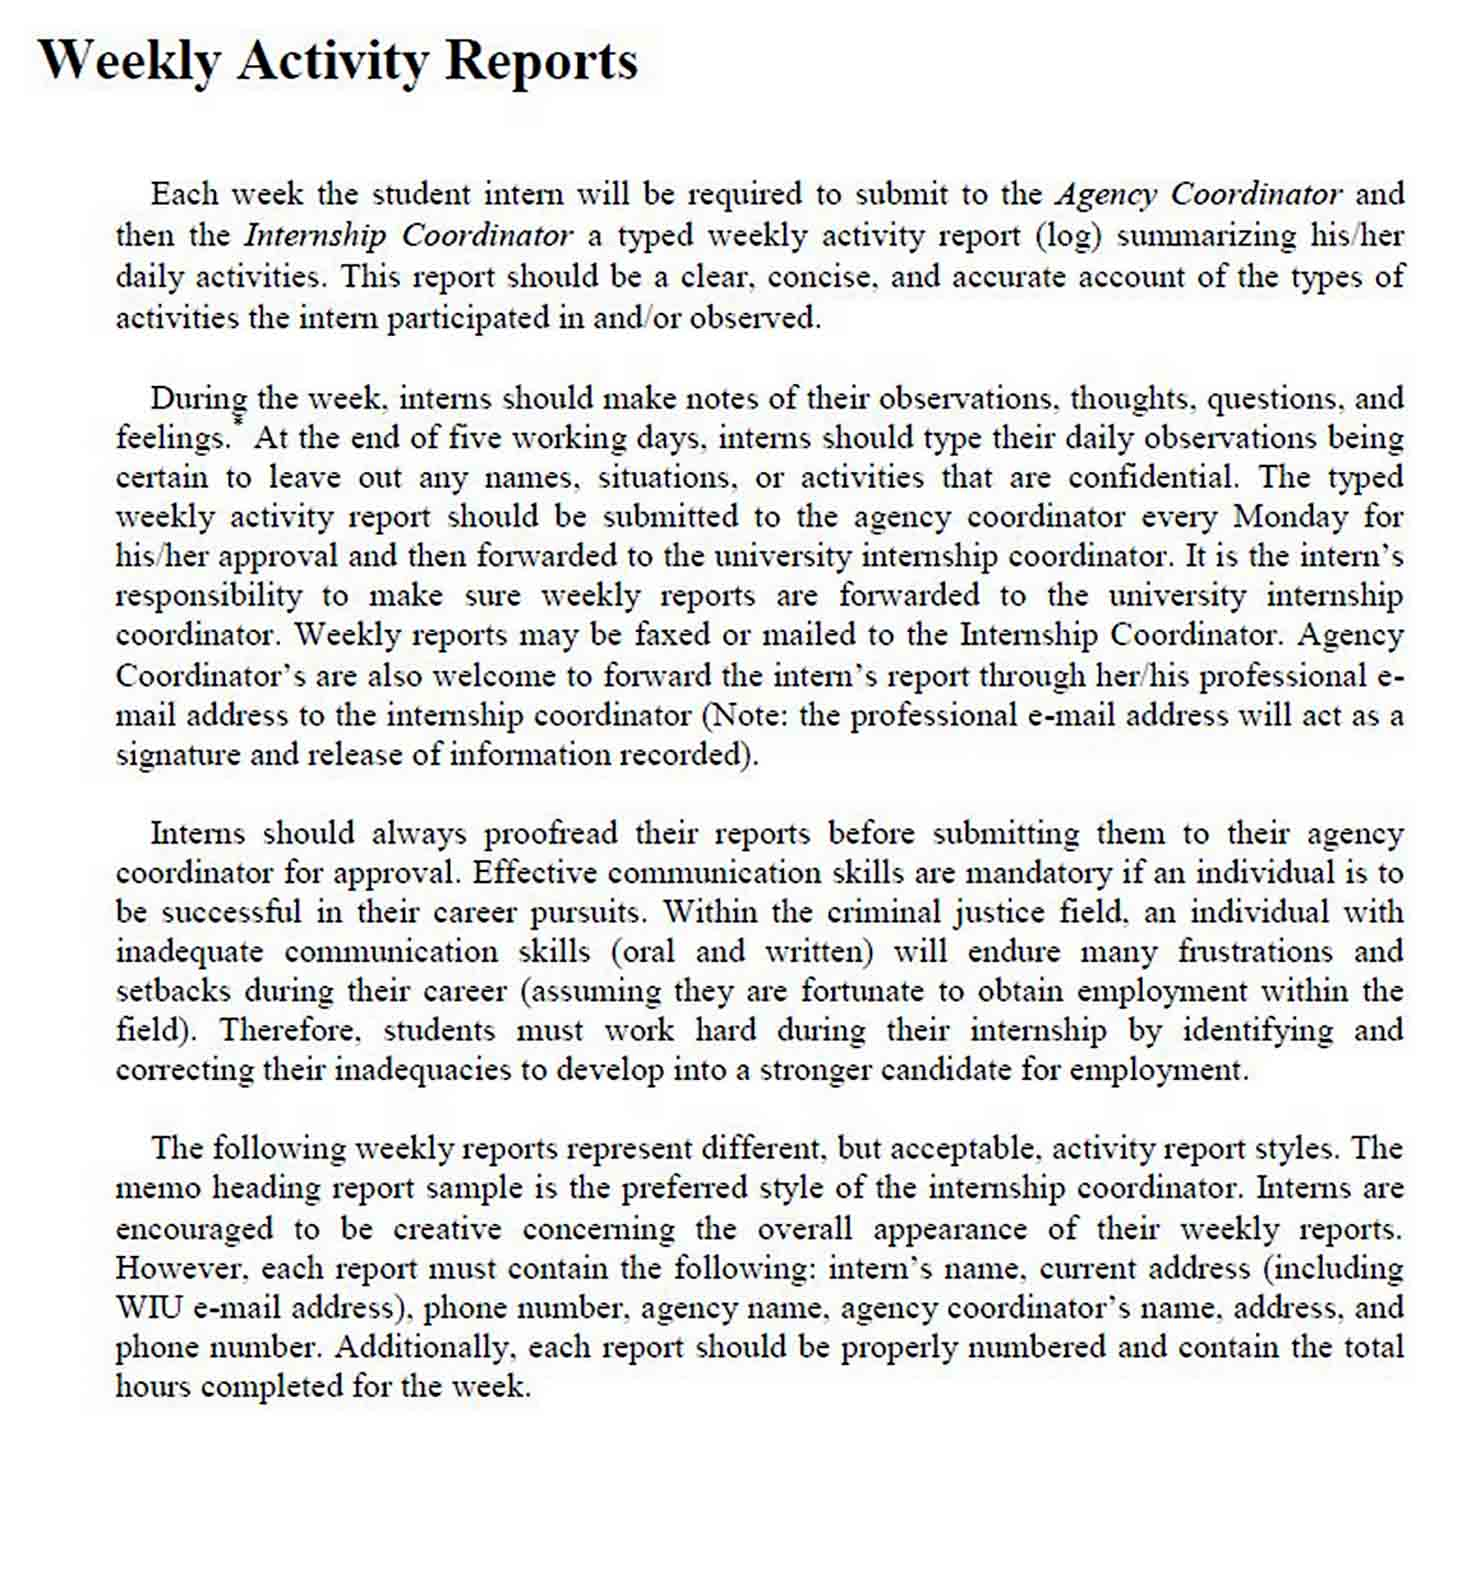 Weekly Activity Report in PDF sample